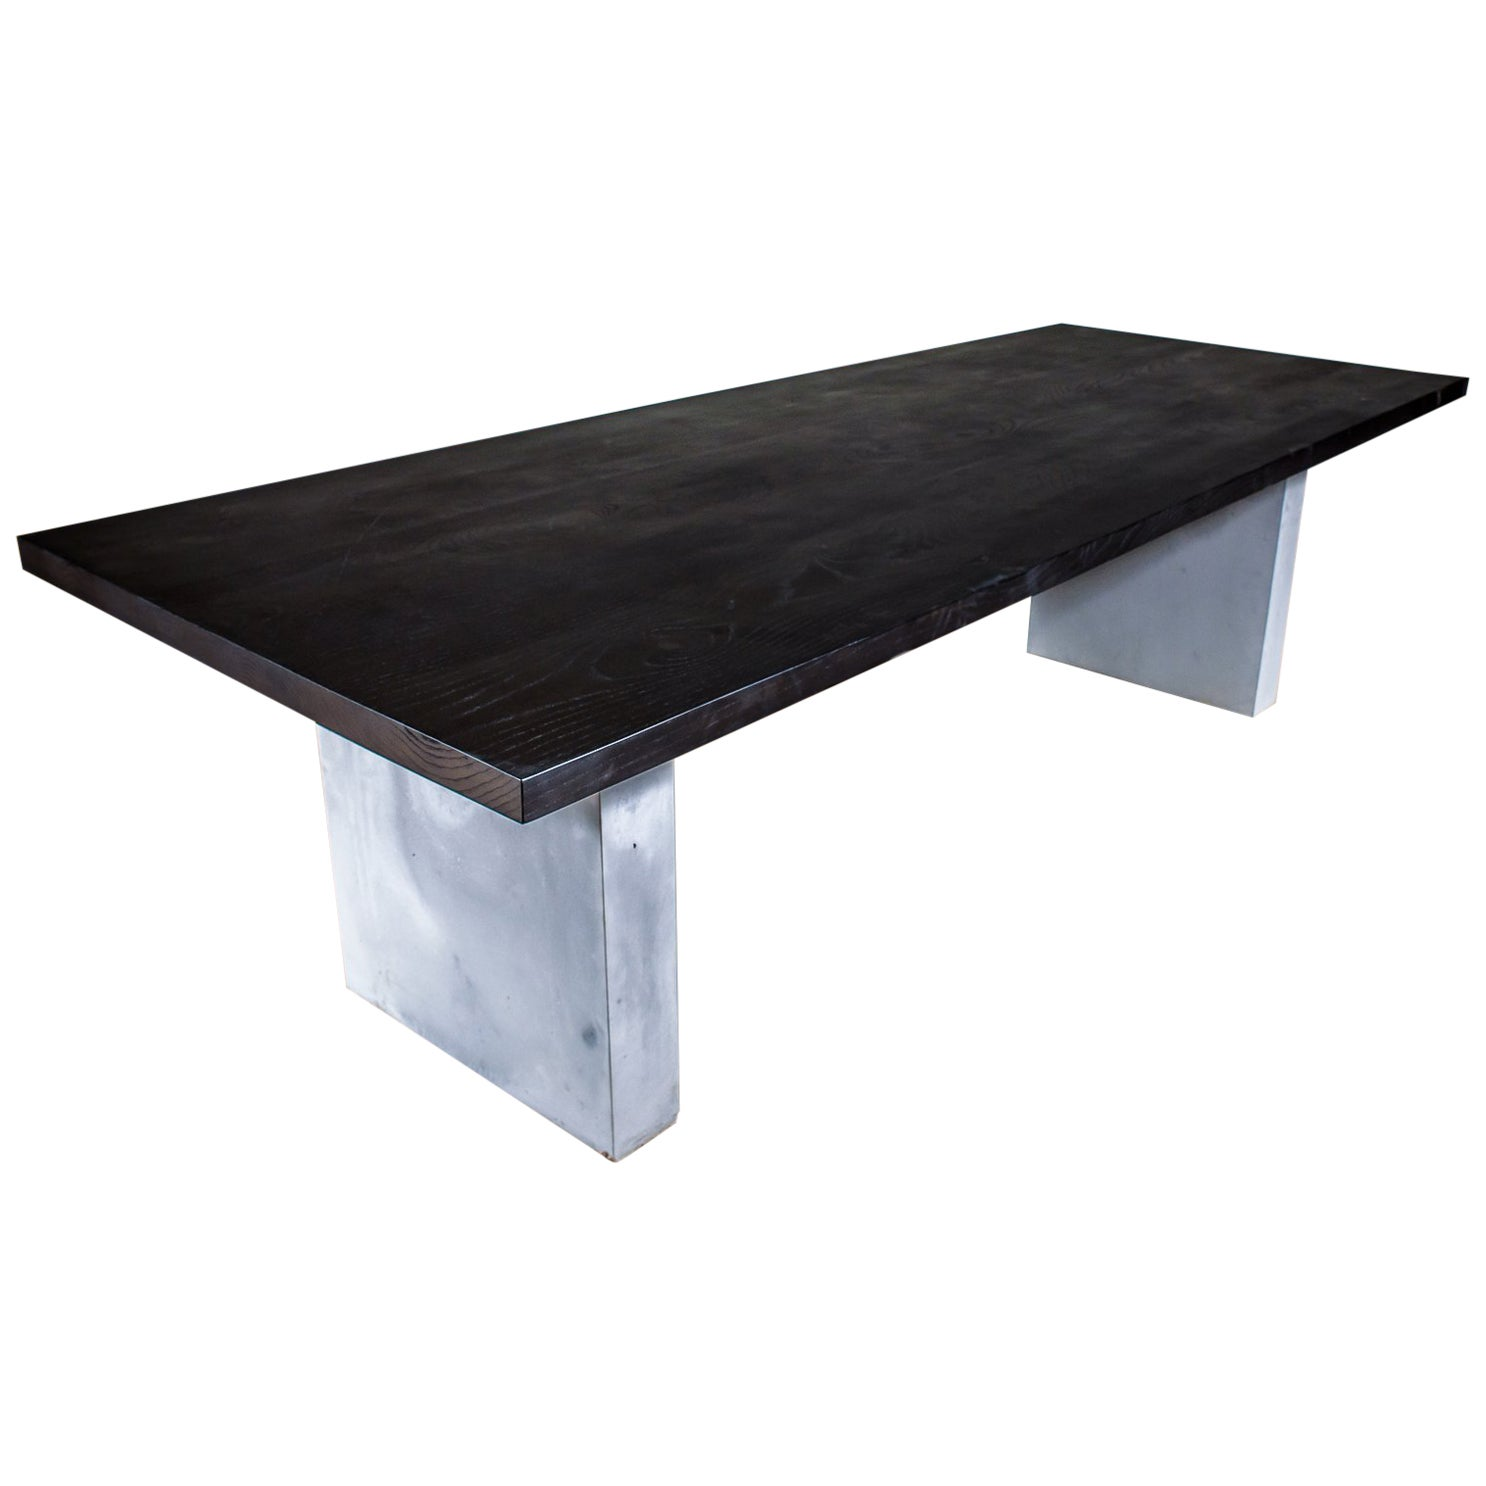 Ash Dining Table Stained Black on Concrete Legs